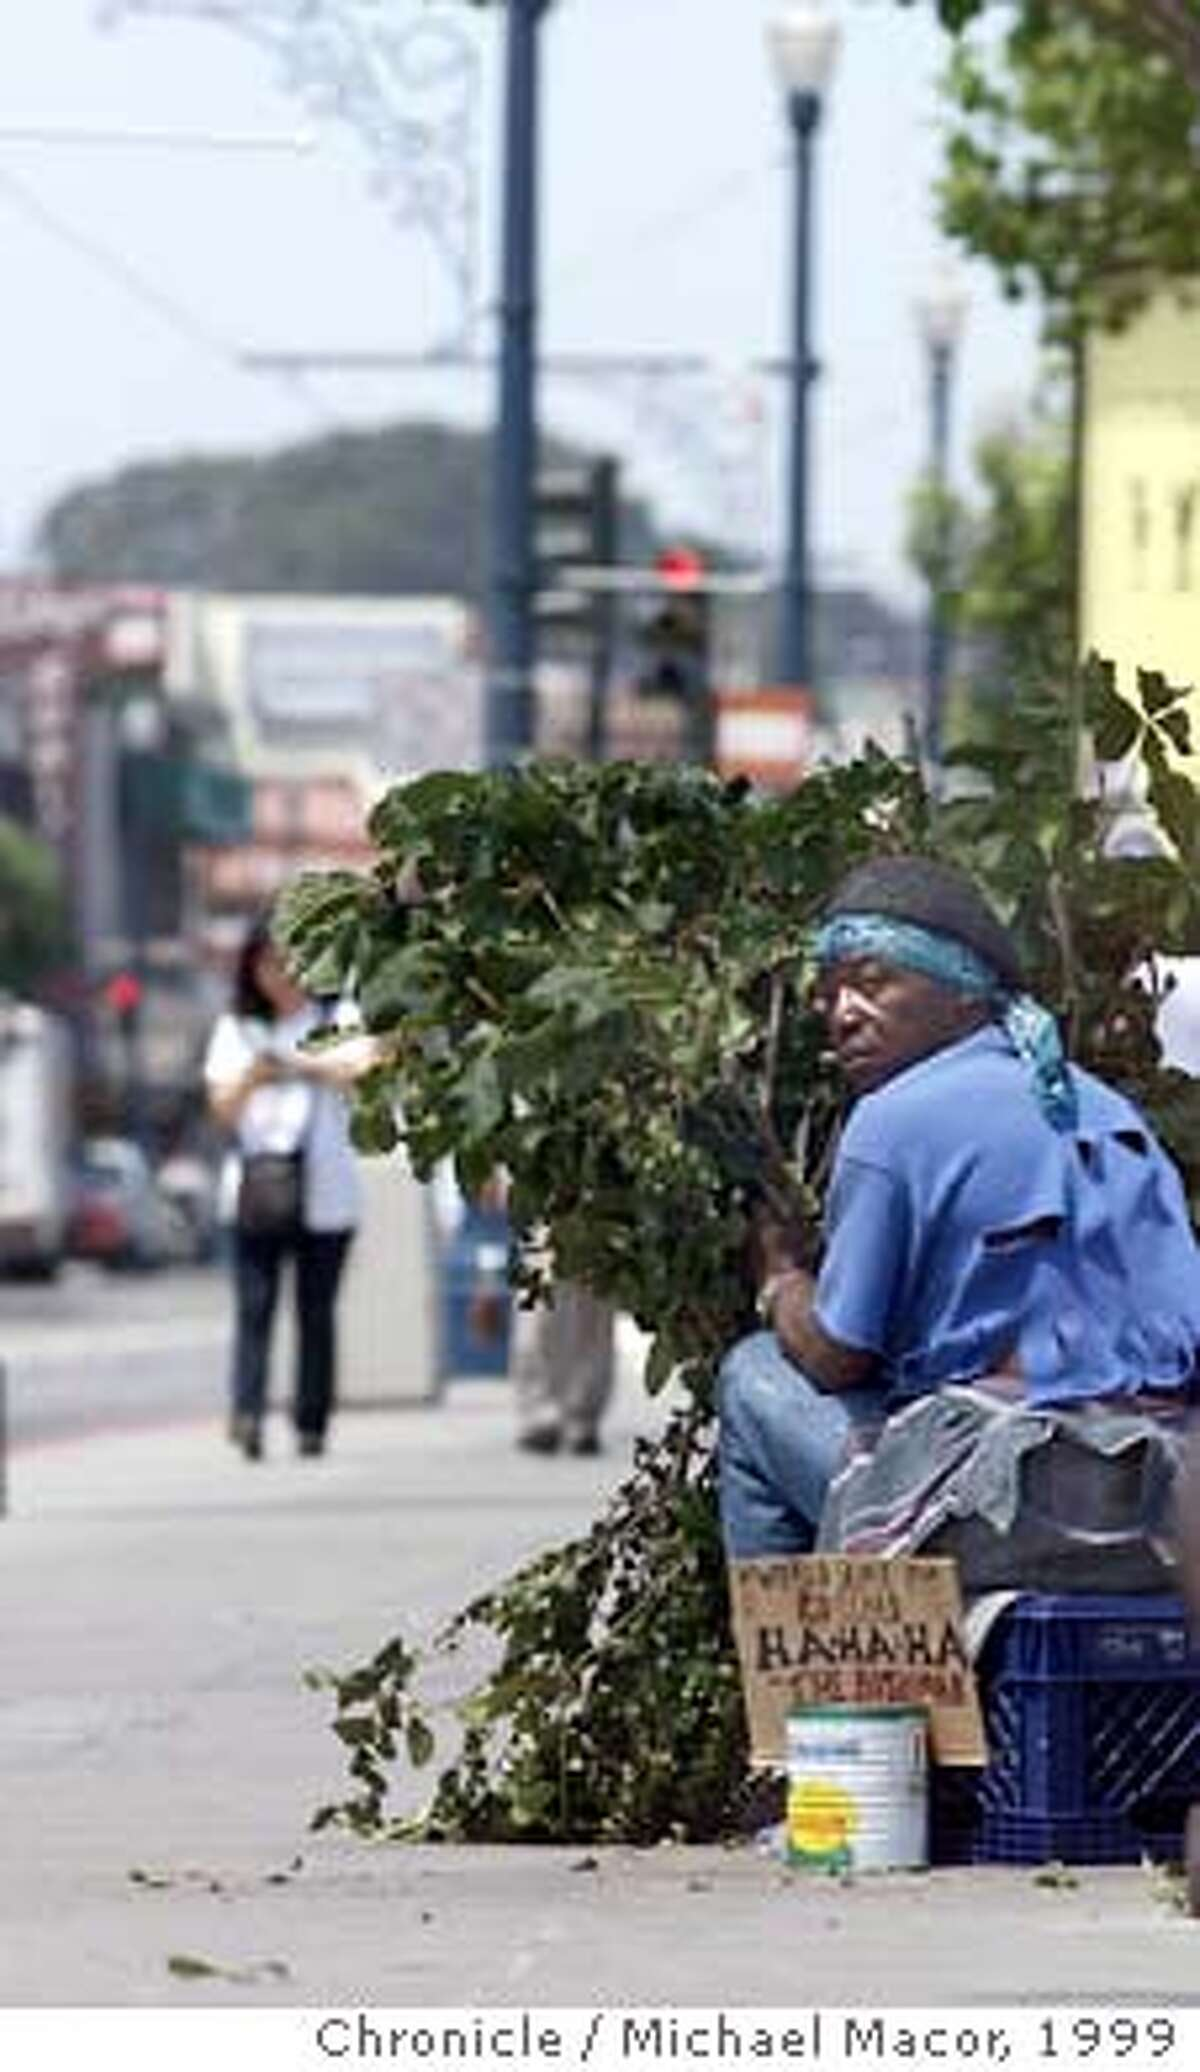 """BUSHMAN 2-C-12JUL99-MN-MAC David """"Bushman"""" Johnson has been scaring tourists along Fisherman's Wharf for the past 20 years. Hiding behind tree branches and jumping out at the last moment. Johnson watches for his next victim. by Michael Macor/The Chronicle"""